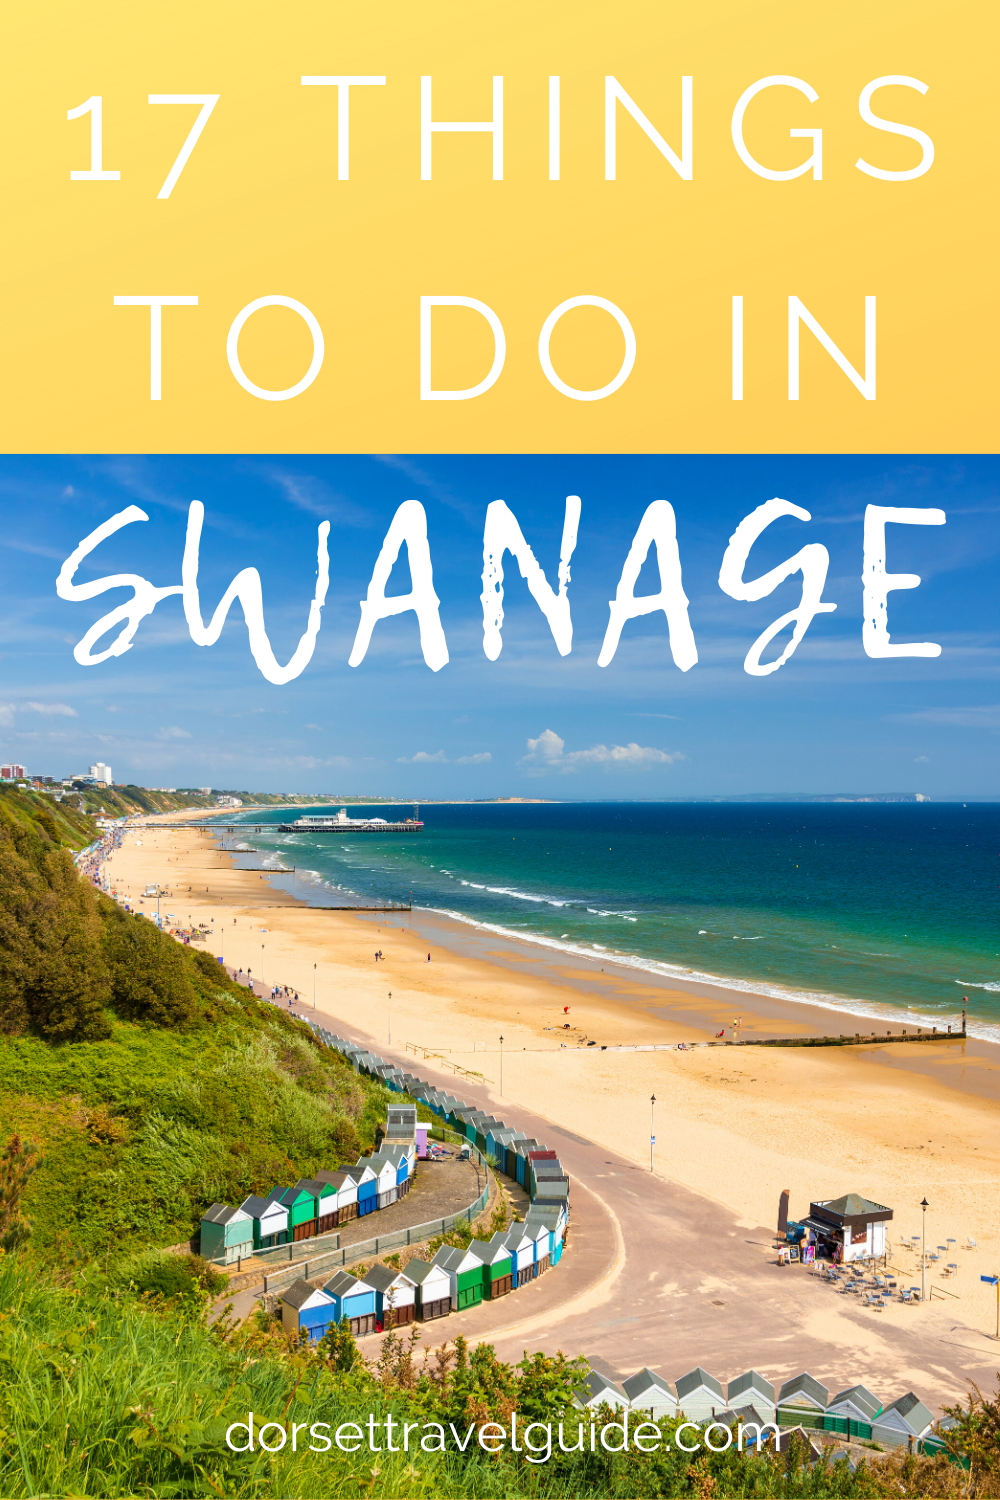 17 Things to do in Swanage